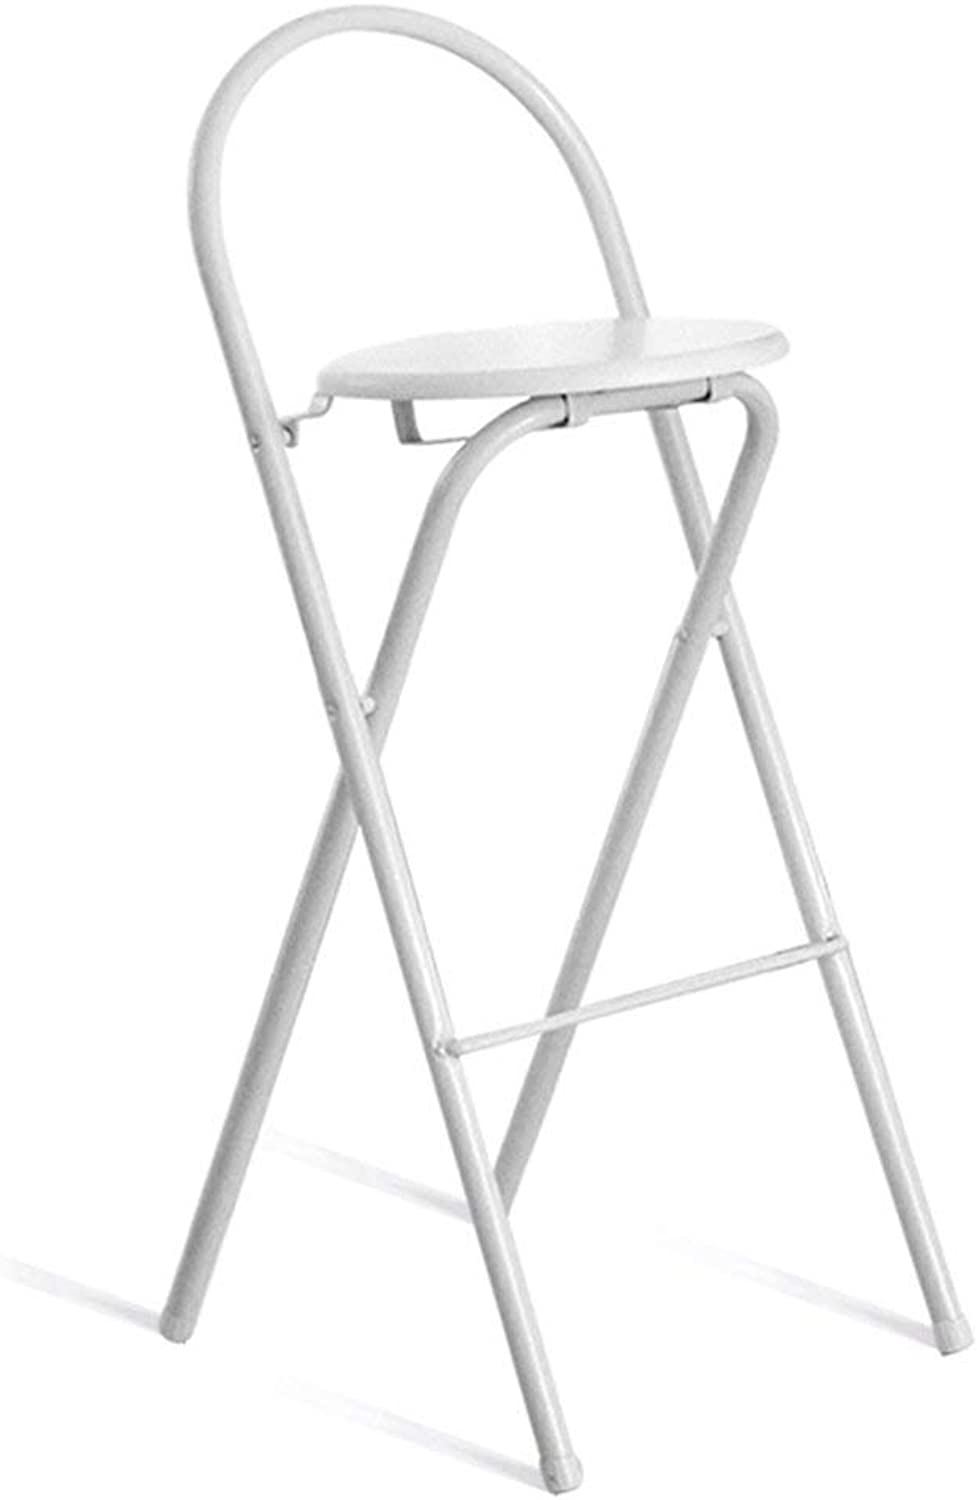 Lil Bar Folding High Chair Home Chair Simple Portable Thickened Adult Chair Stool Lounge Chair (color   Black)